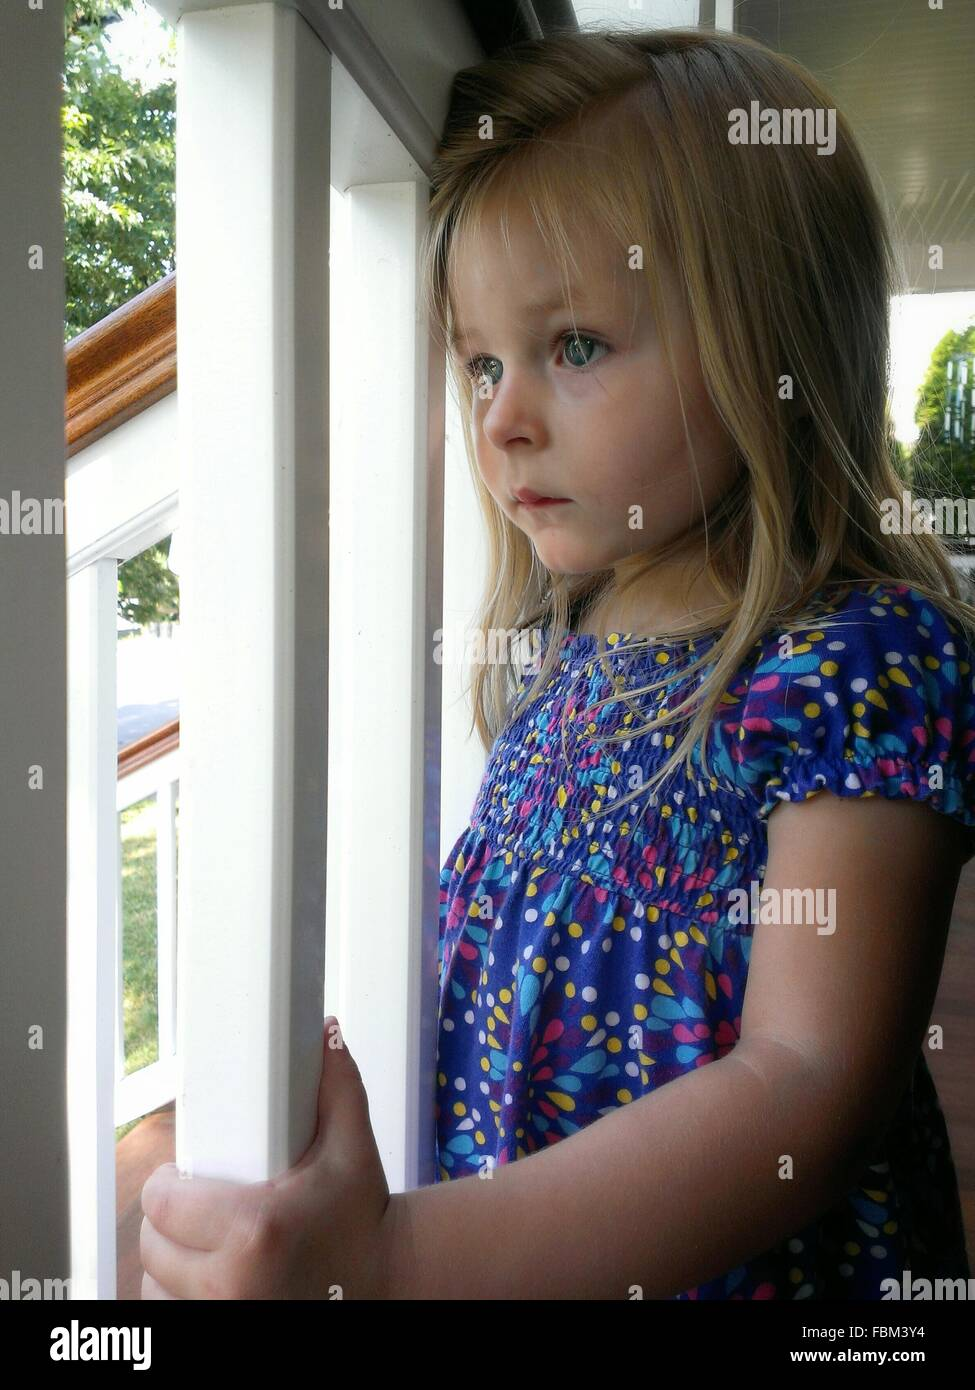 Close-Up Of A Cute Girl Looking Through Window - Stock Image